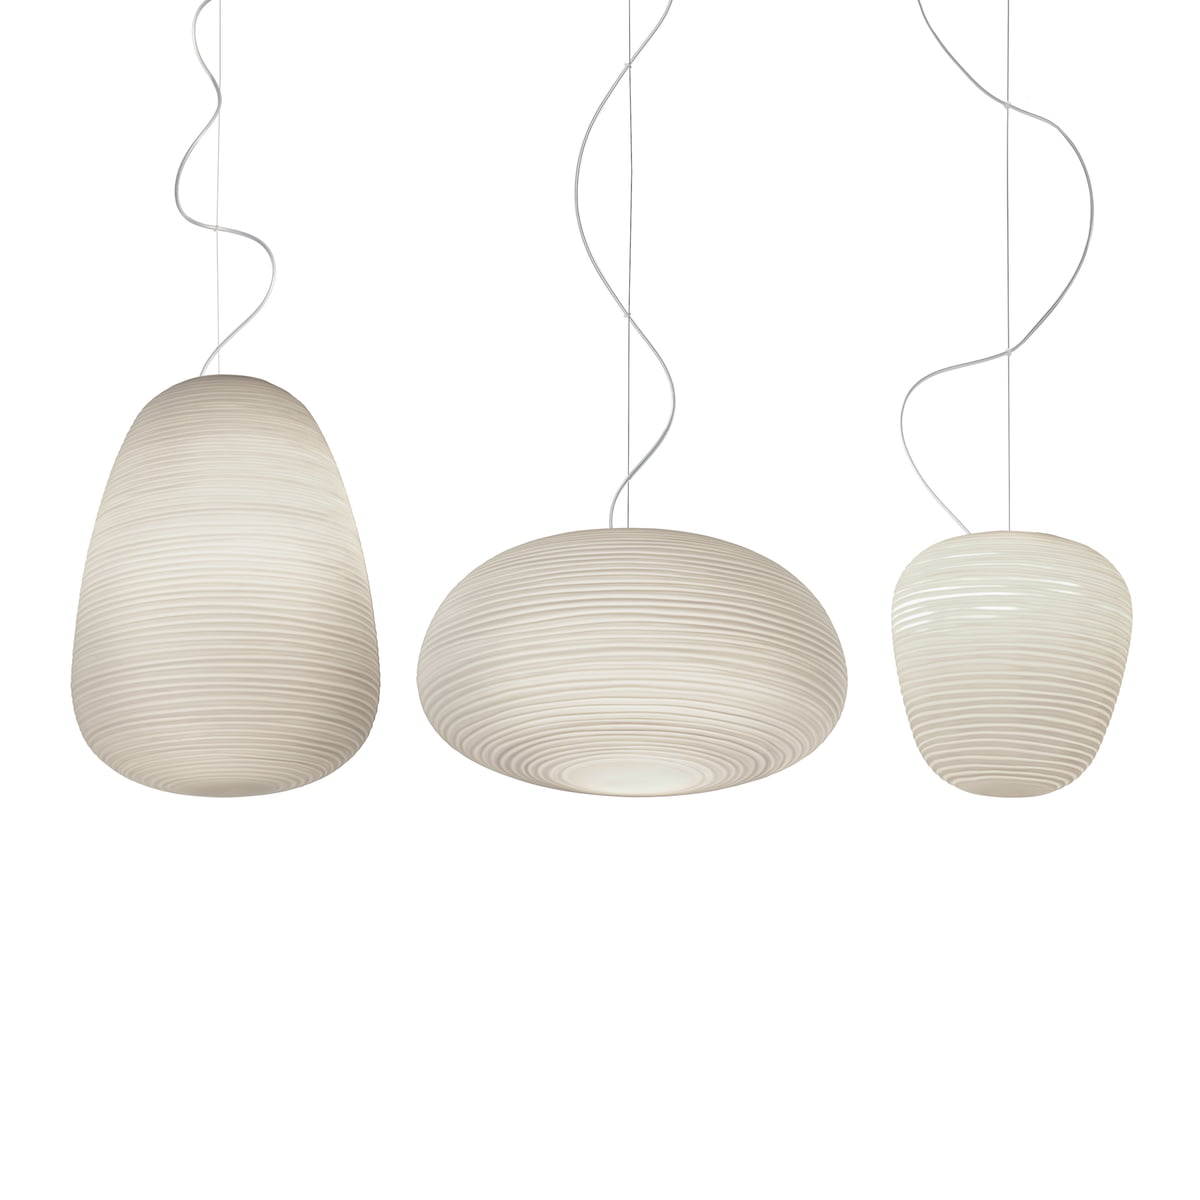 Rituals pendant lamp by foscarini in our shop foscarini rituals pendant luminaires aloadofball Image collections